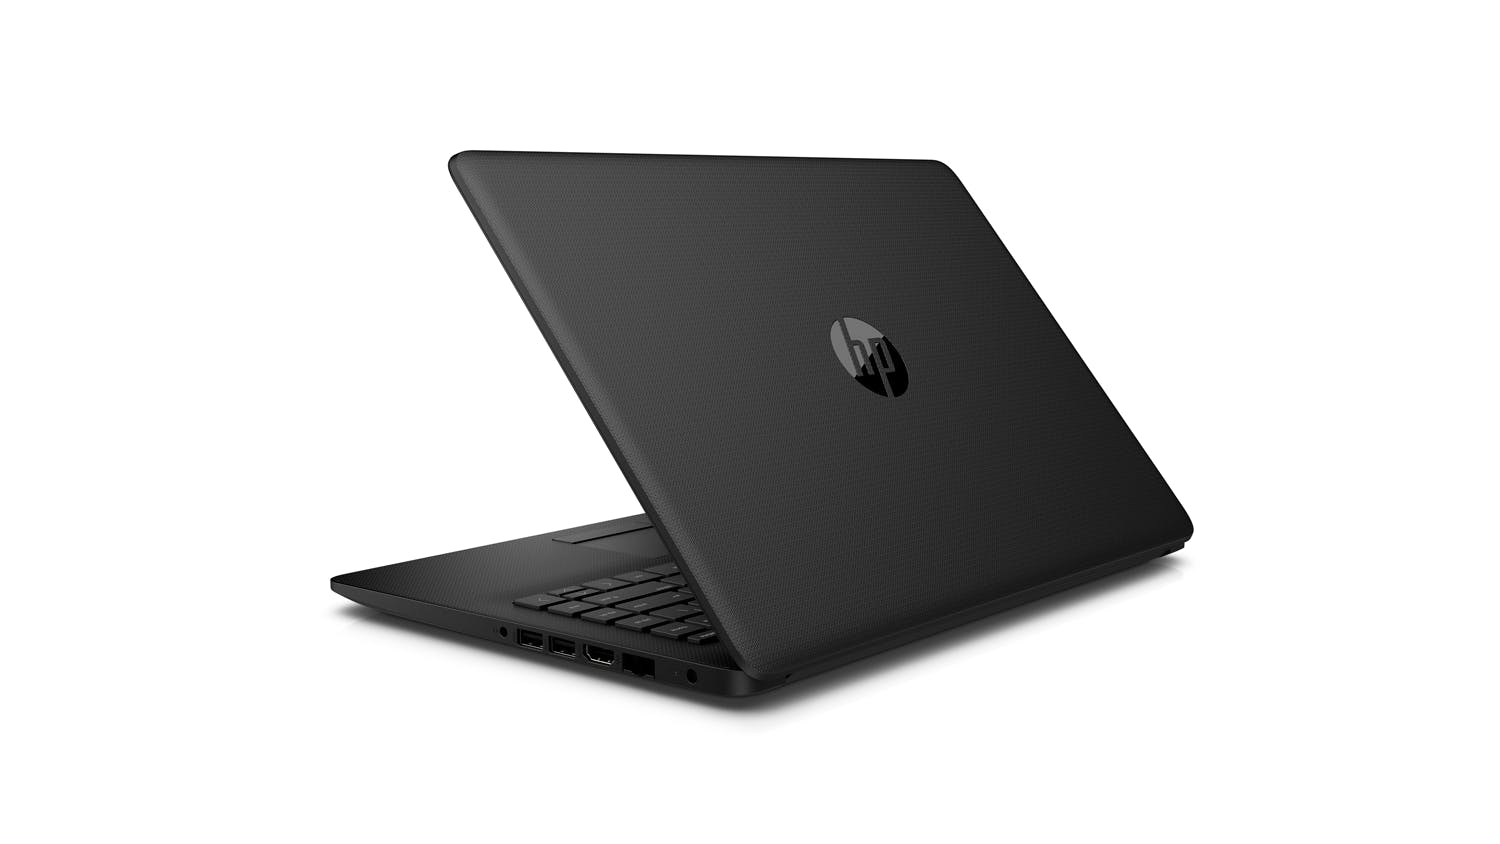 1e32b8b476d2 Laptops, Laptop, Gaming Laptops, Modern PC | Harvey Norman New Zealand